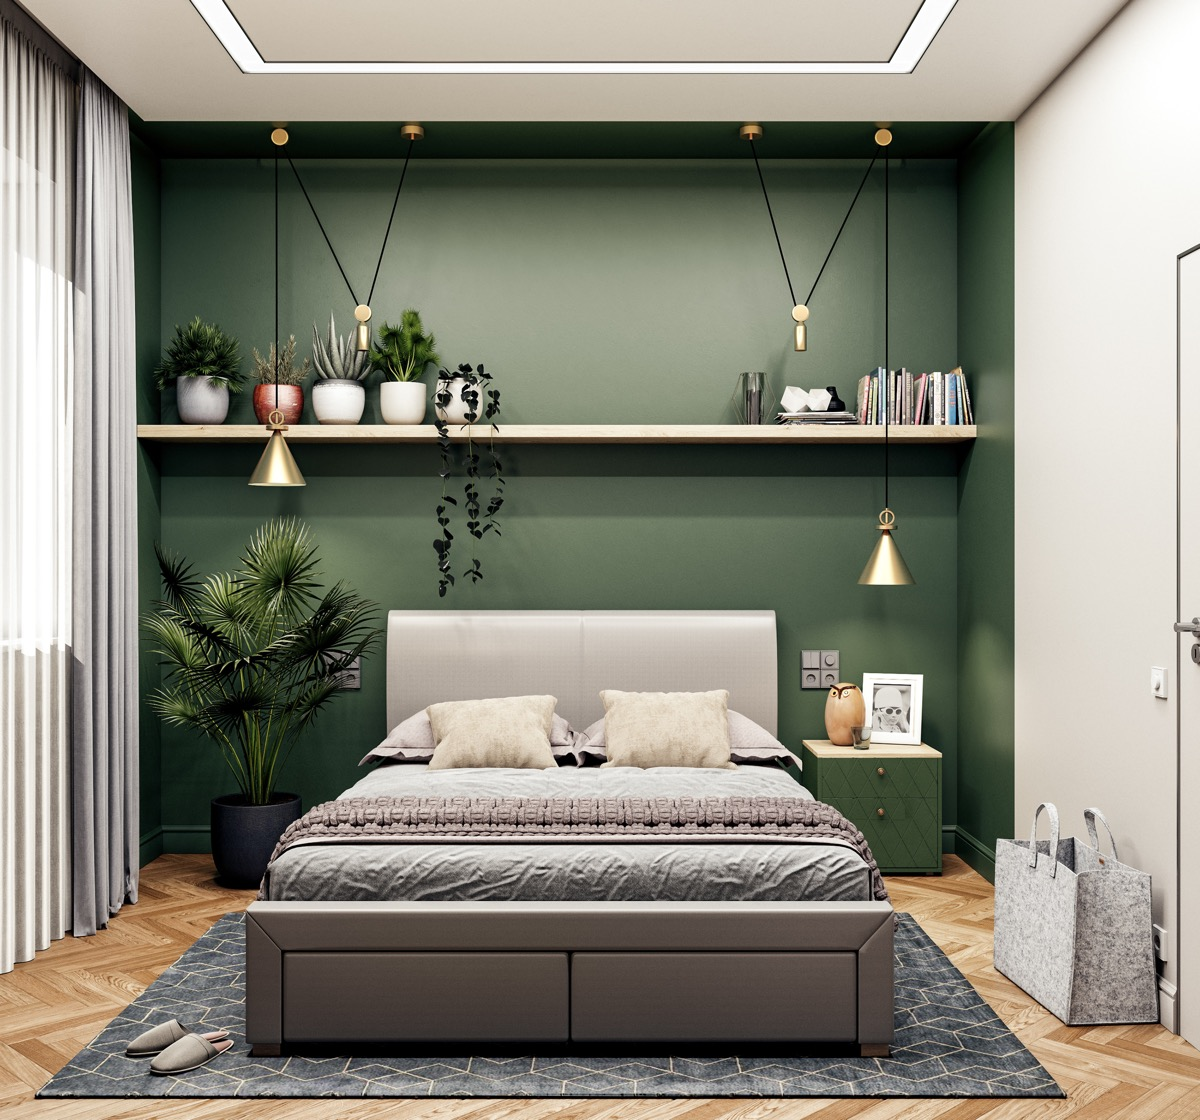 9 Green Bedrooms With Tips And Accessories To Help You Design Yours